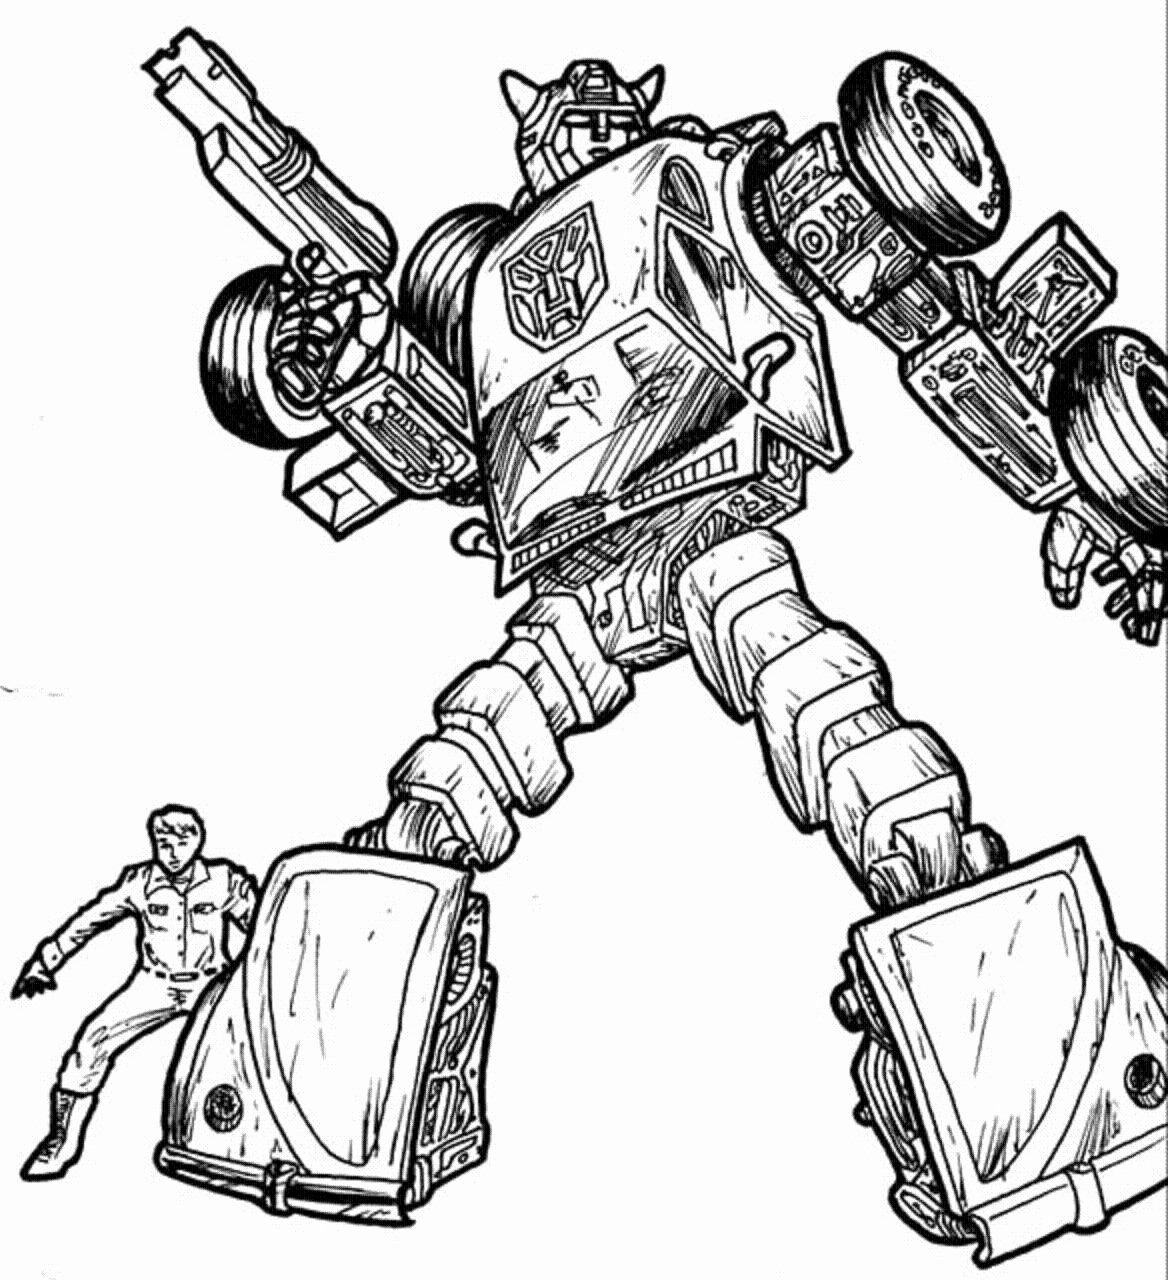 Bumblebee Transformer Coloring Page Unique Transformers Matrix Wallpapers Bumblebee G1 3d Anak